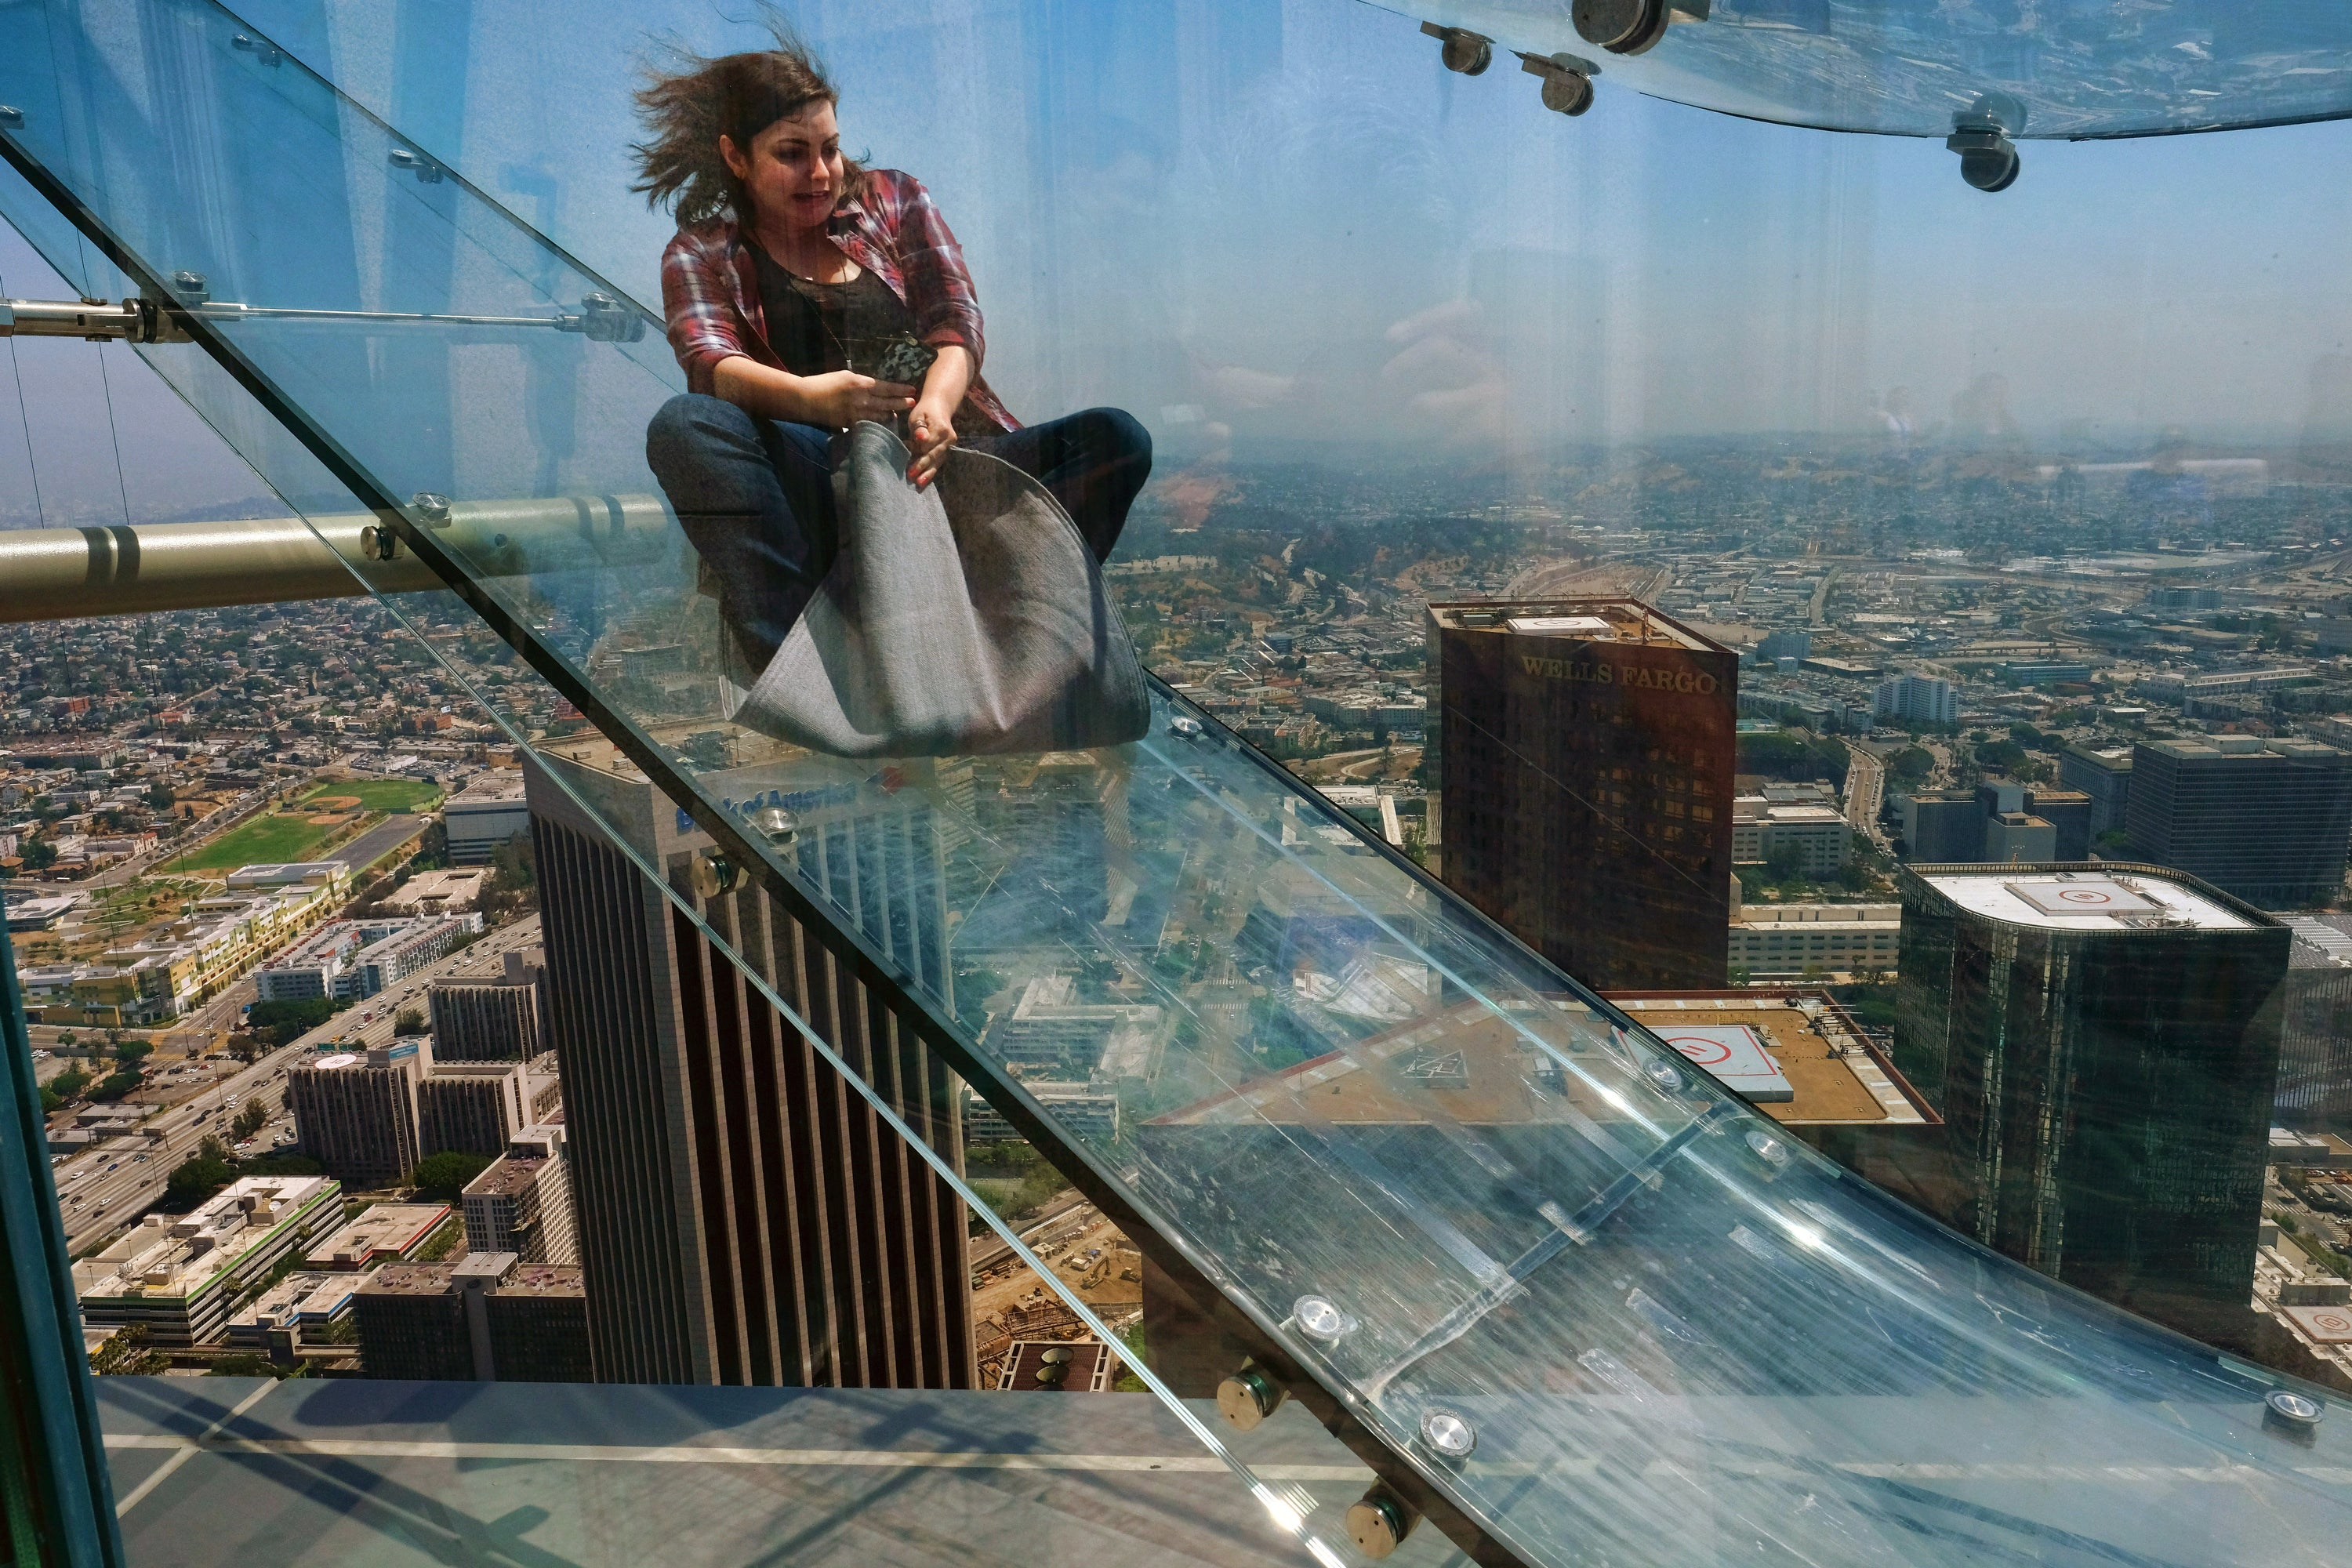 The Most Terrifying Glass Slide Ever Opens Atop L.A. Skyscraper